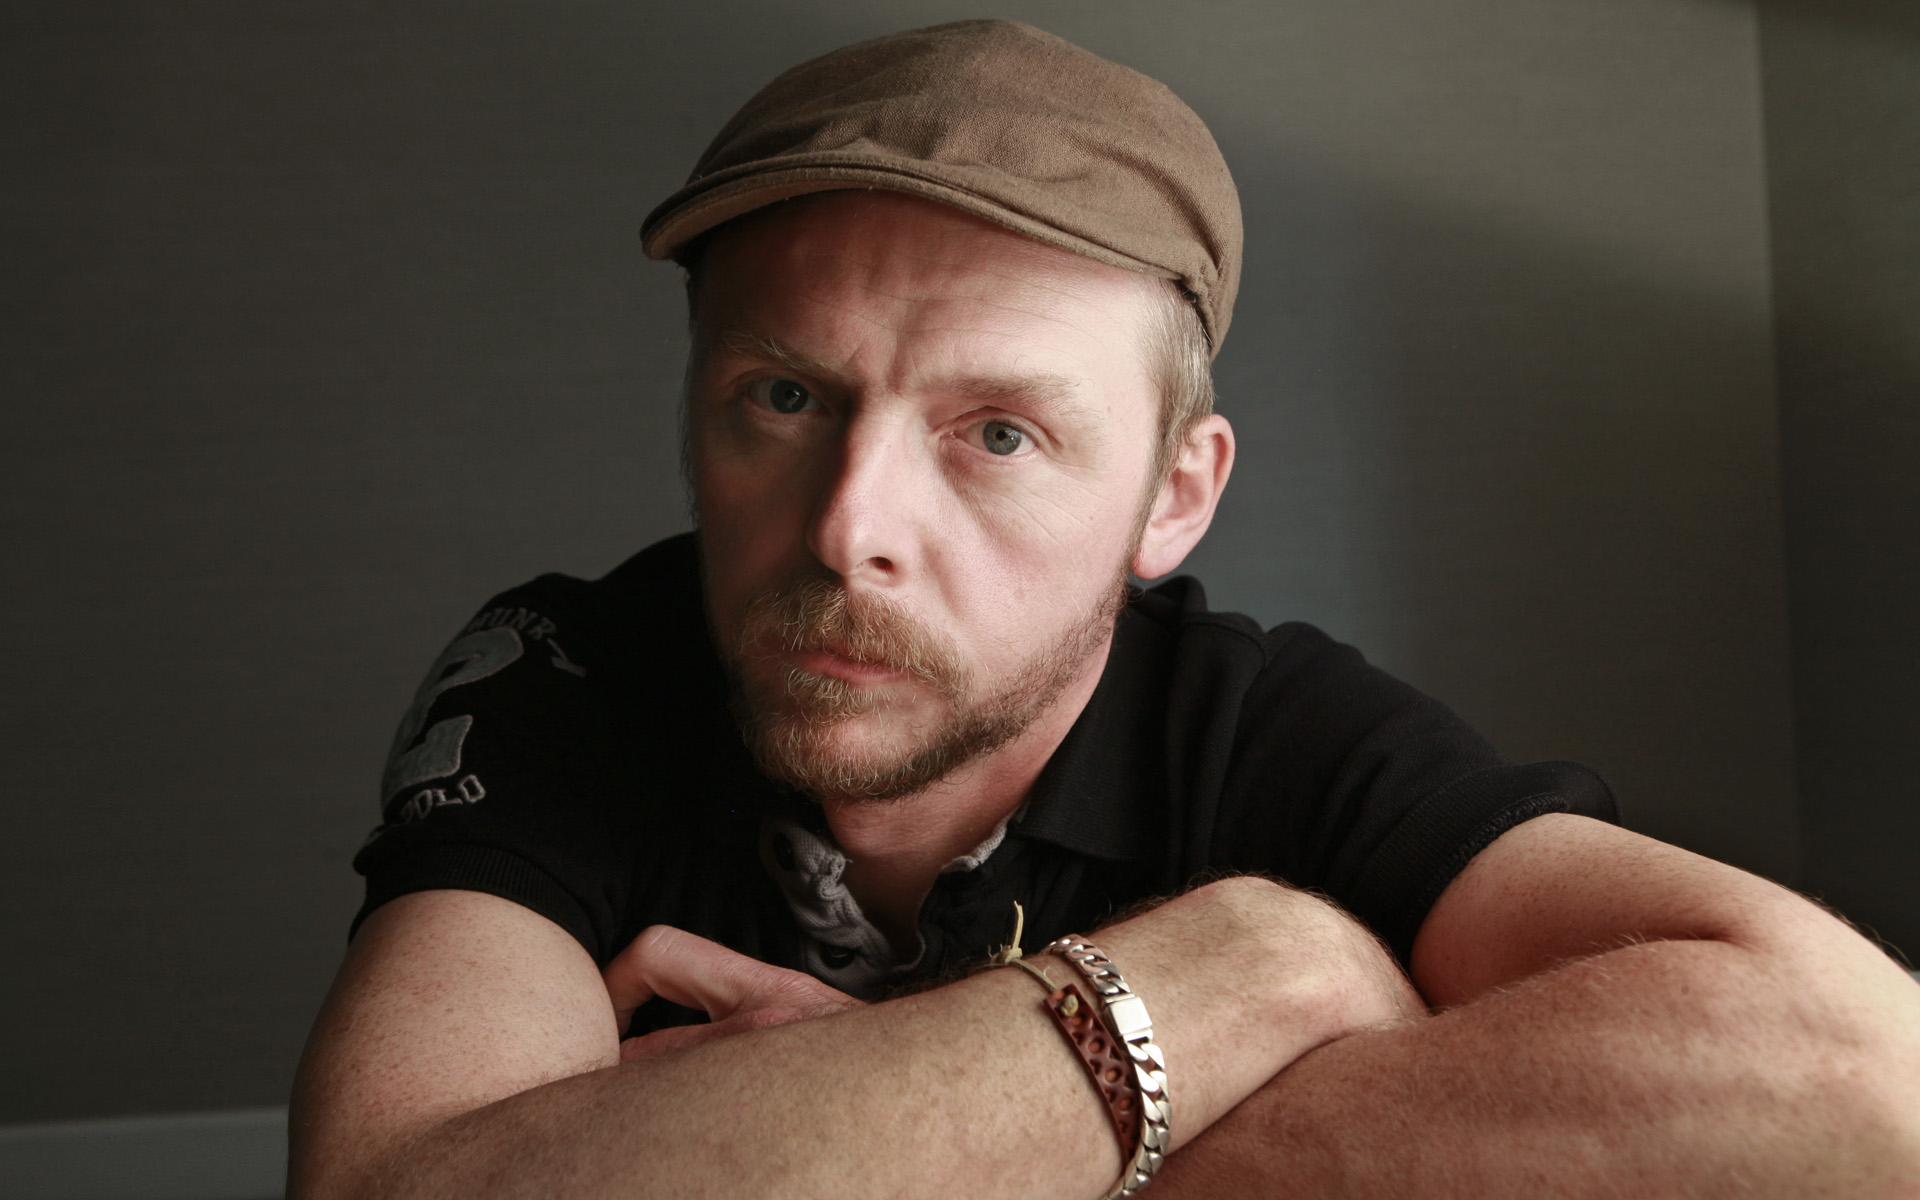 http://conversationsabouther.net/wp-content/uploads/2014/02/Simon-Pegg.jpg